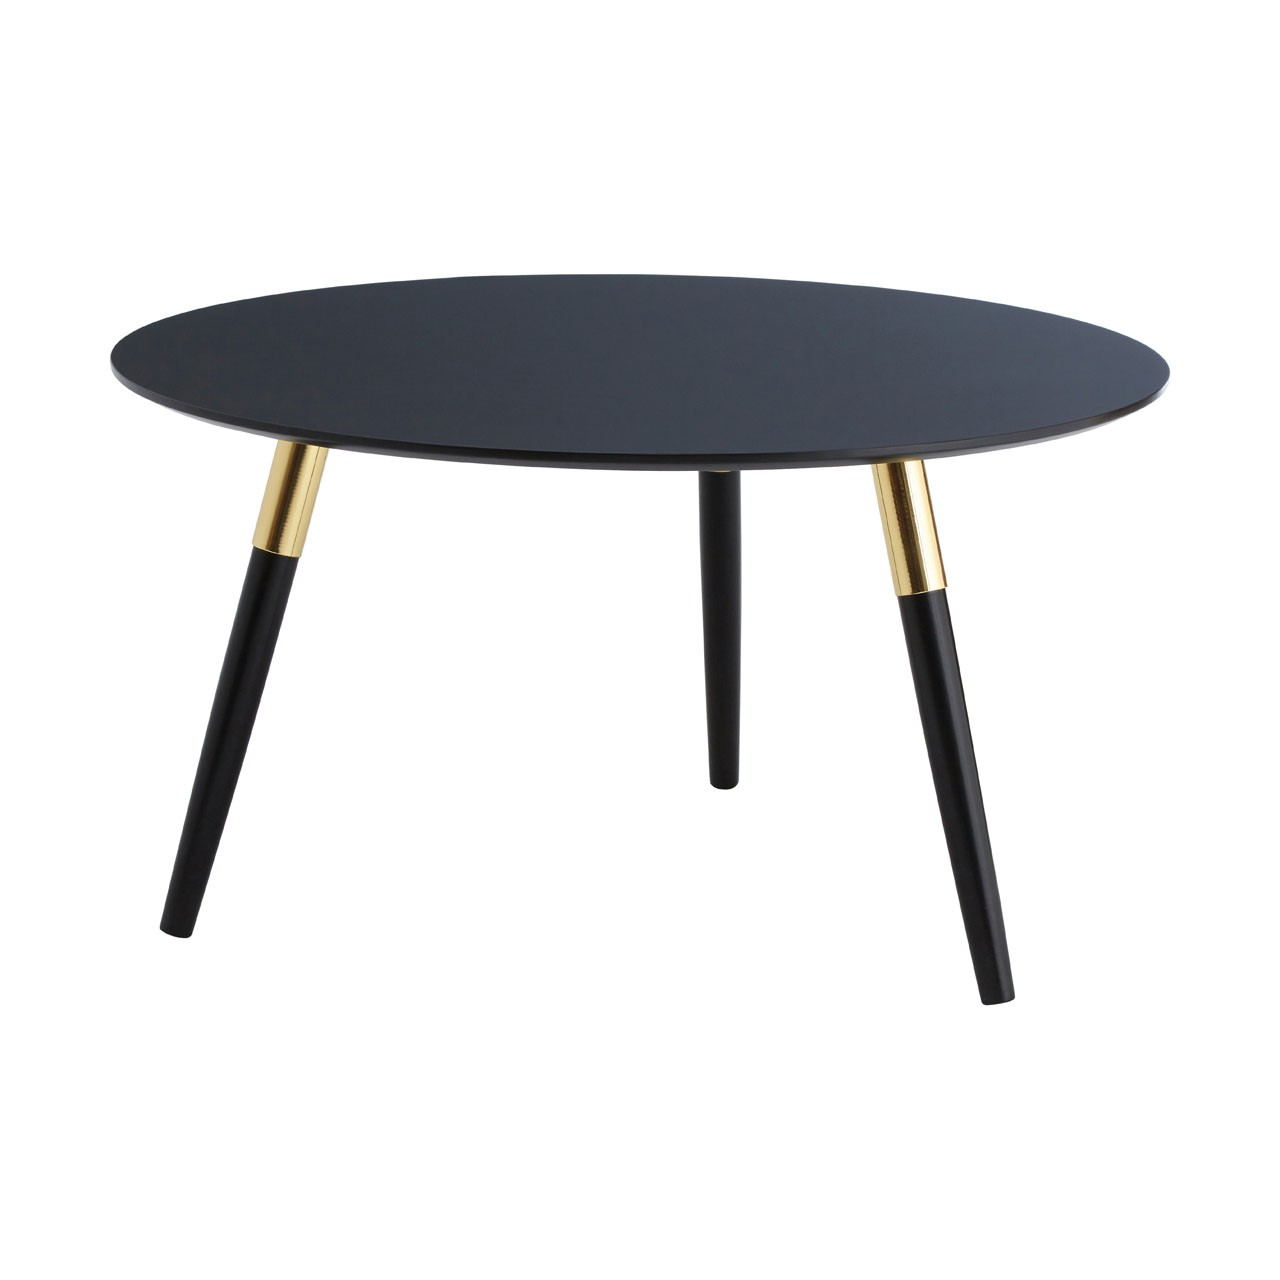 Black Oak Round Coffee Table: Vinyl Round Black Oak Coffee Table